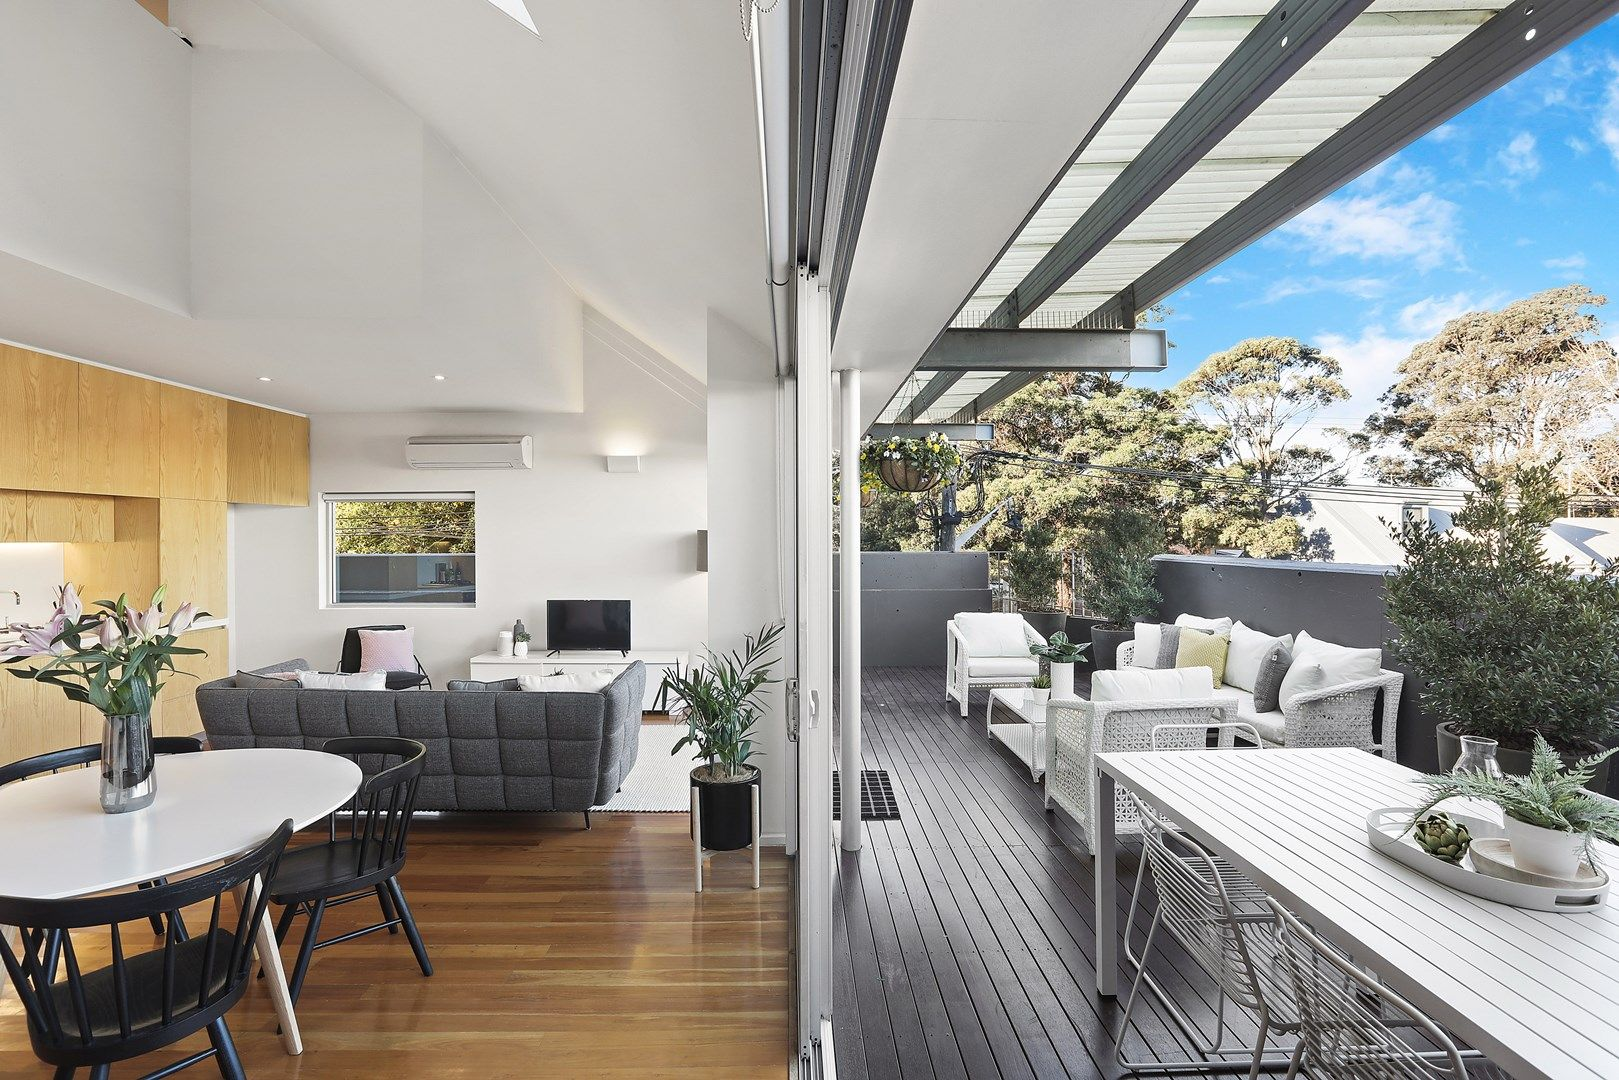 18/1A Gowrie Street, Newtown NSW 2042, Image 0